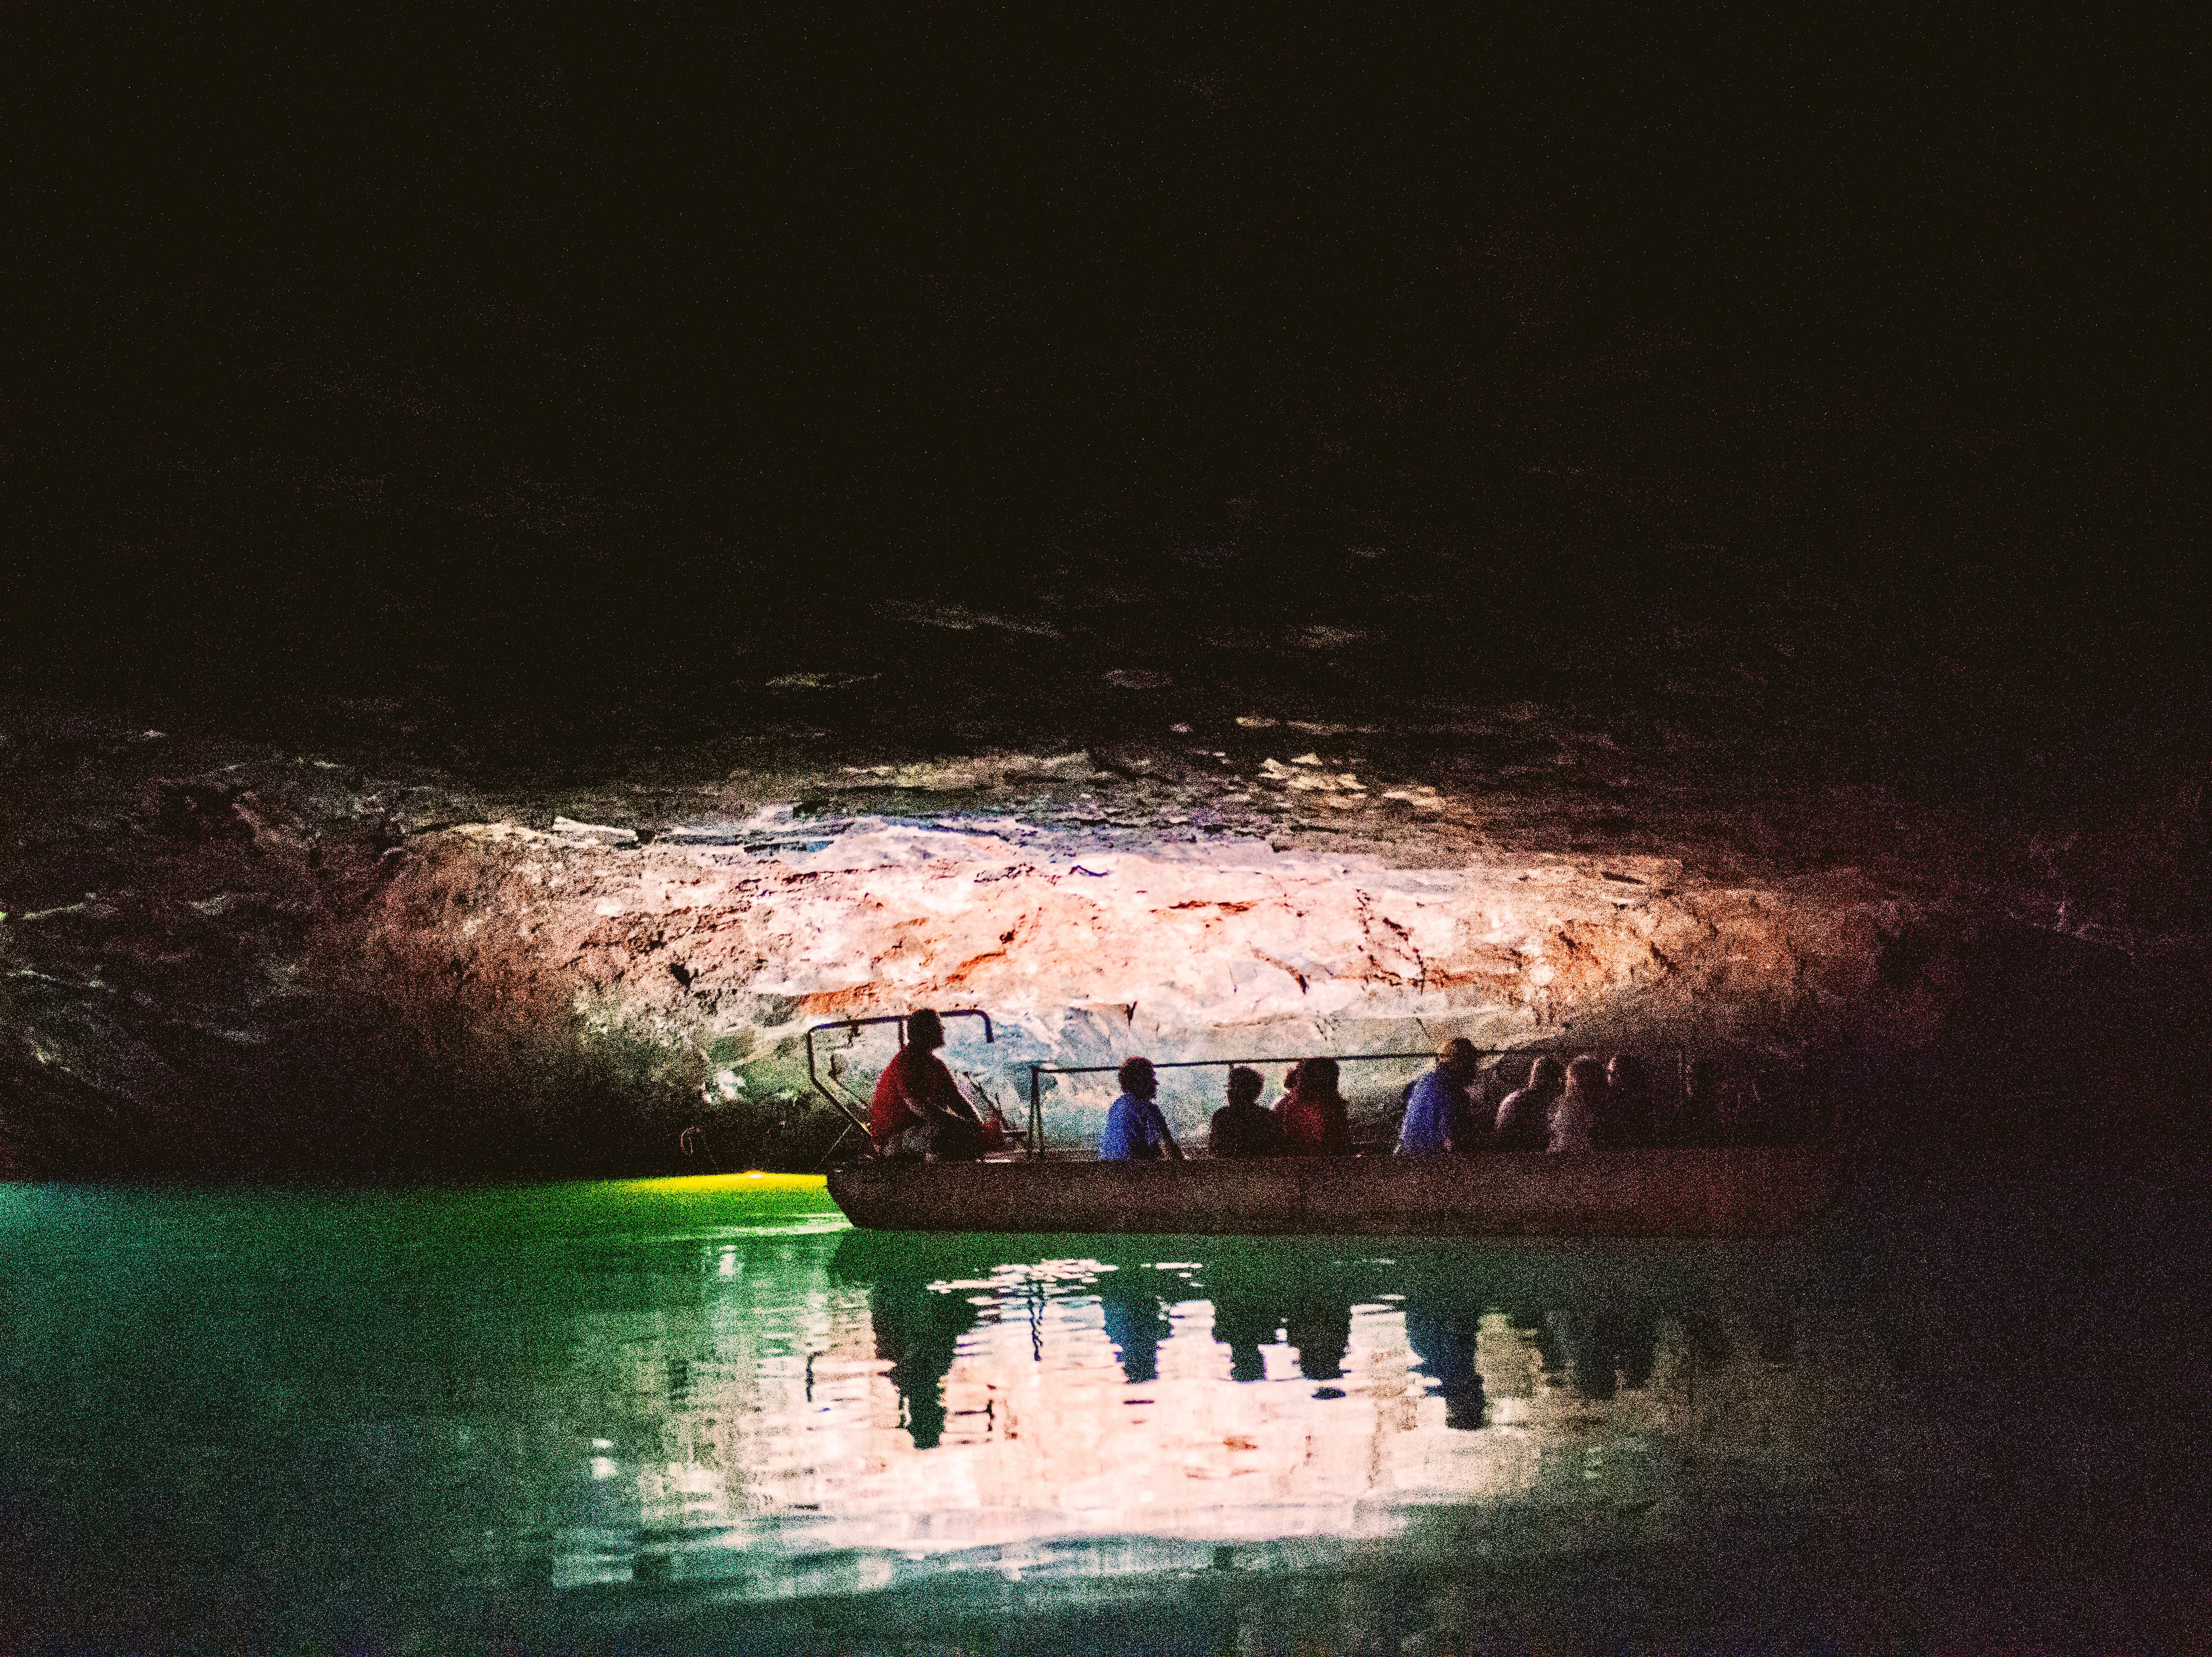 Tour guide Cody Isbill takes visitors for a ride through an underground lake at the Lost Sea Adventure cave attraction outside of Sweetwater, Tennessee on Wednesday, August 15, 2018. The cave system dates back some 20,000 years and today features points of interests like an old moonshine still, rock formations, Confederate Army graffiti and the popular boat ride in a natural lake stocked with 200 rainbow trout.